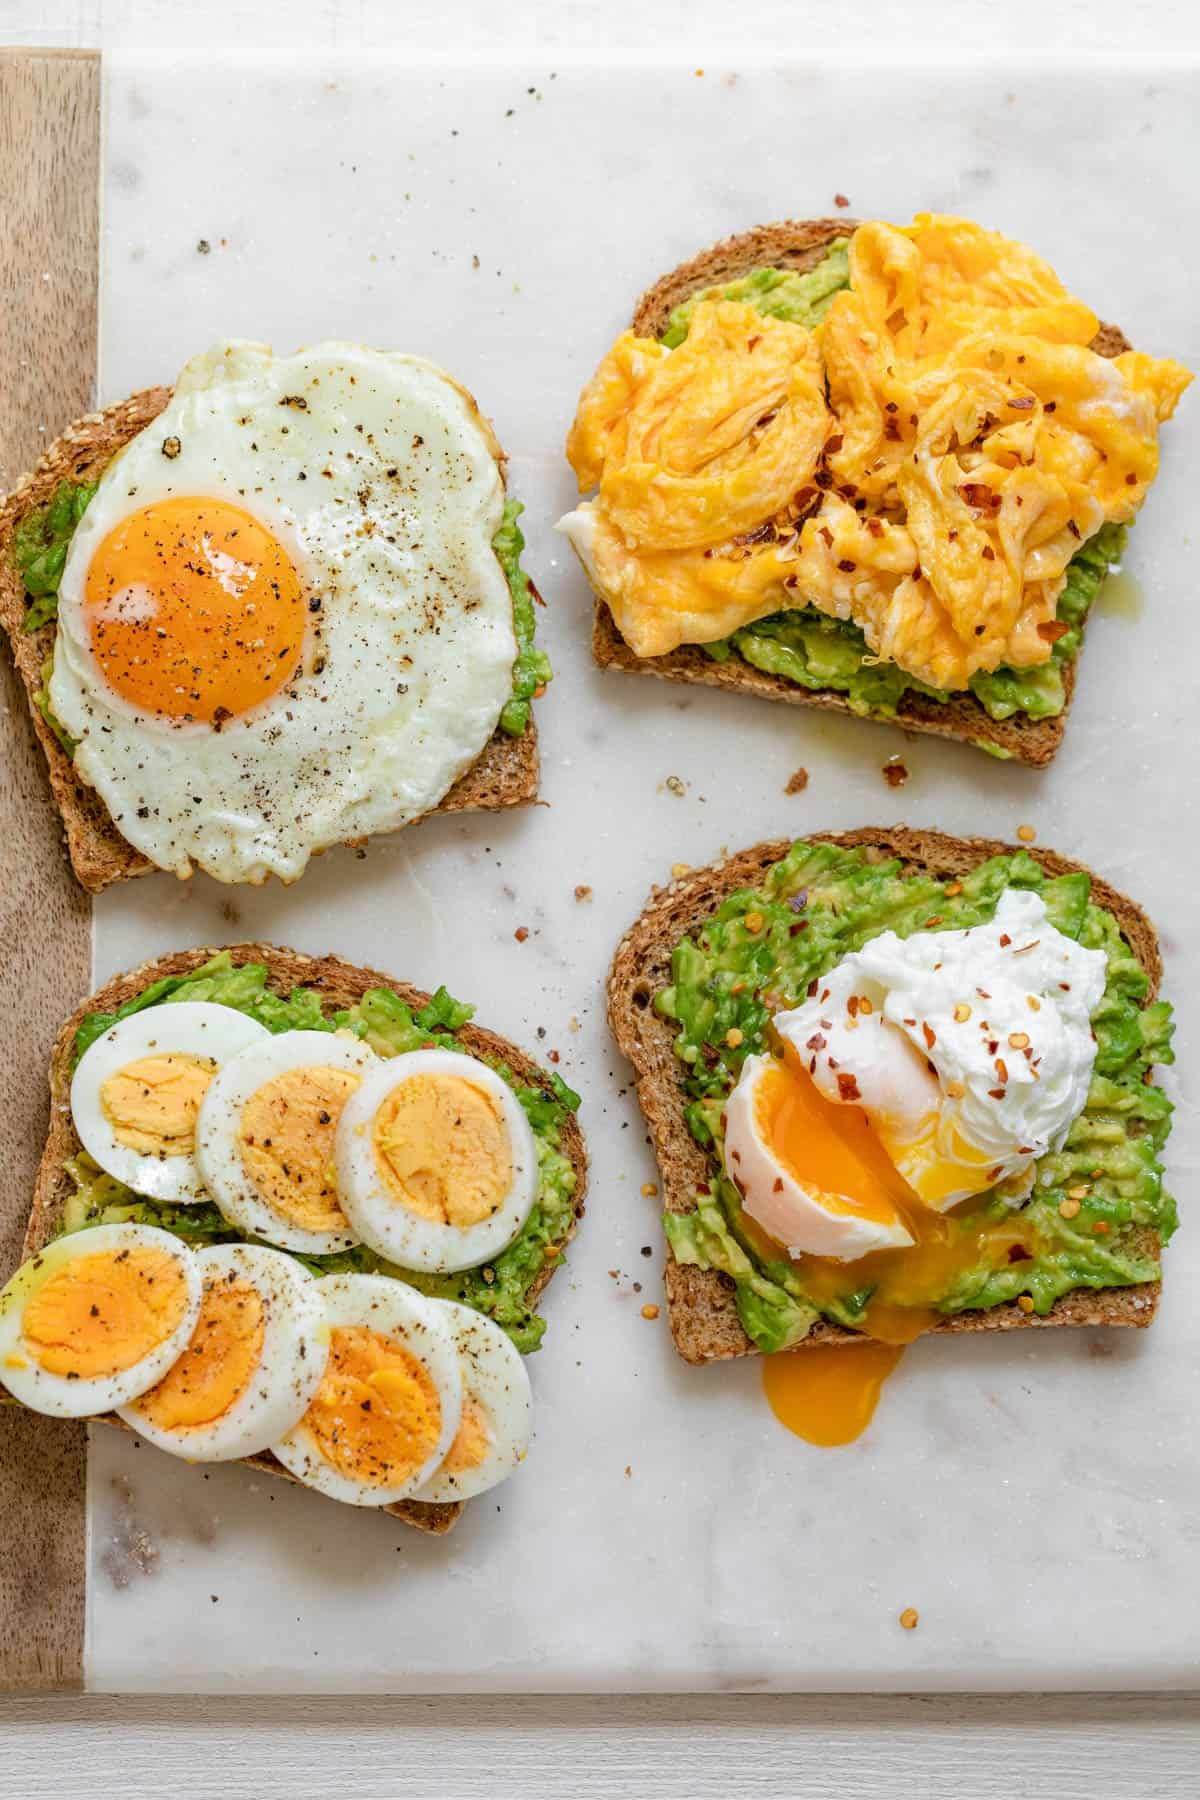 Avocado Toast With Egg 4 Ways Feelgoodfoodie Recipe Healthy Breakfast Recipes Easy Healthy Breakfast Snacks Healthy Snacks Recipes